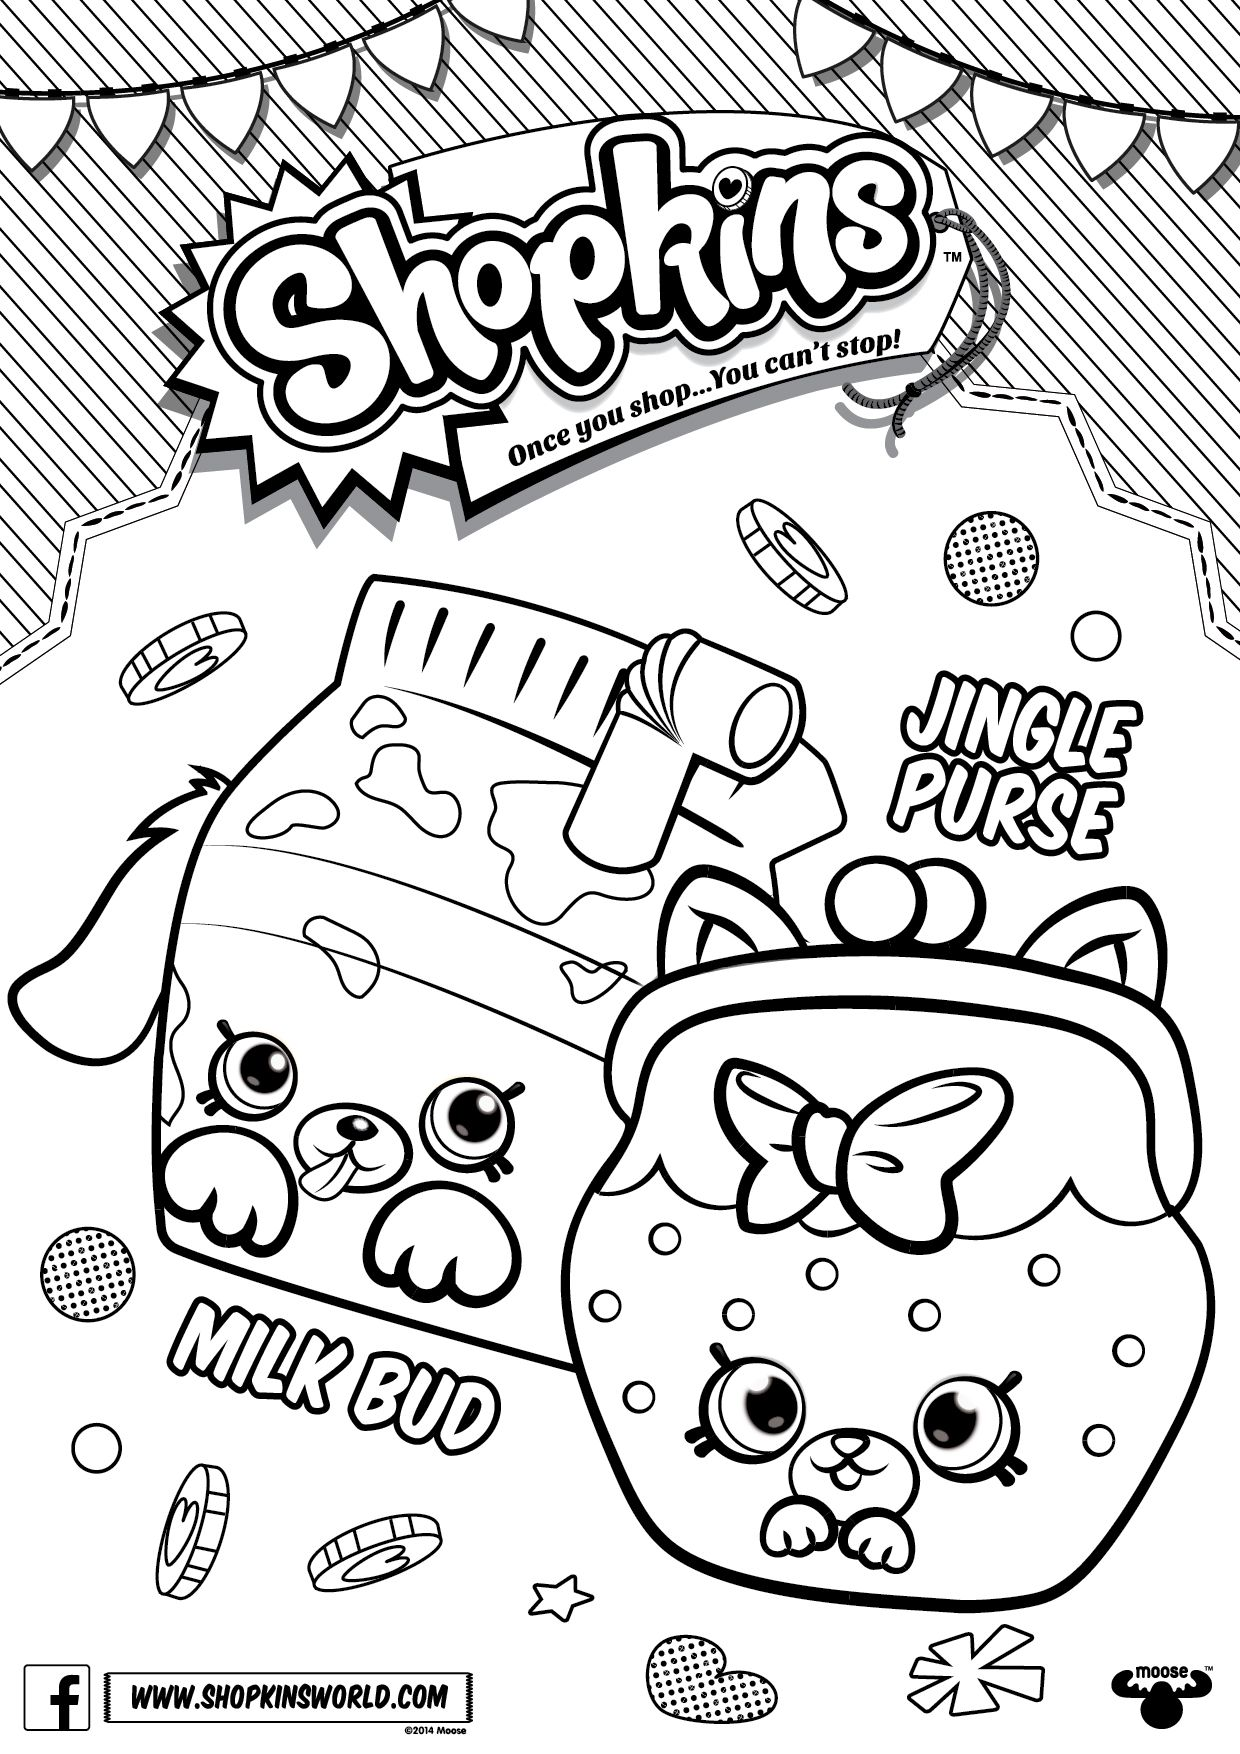 Shopkins coloring pages nail polish - Shopkins Coloring Pages Season 4 Petkins Jingle Purse Milk Bud Made By A Princess